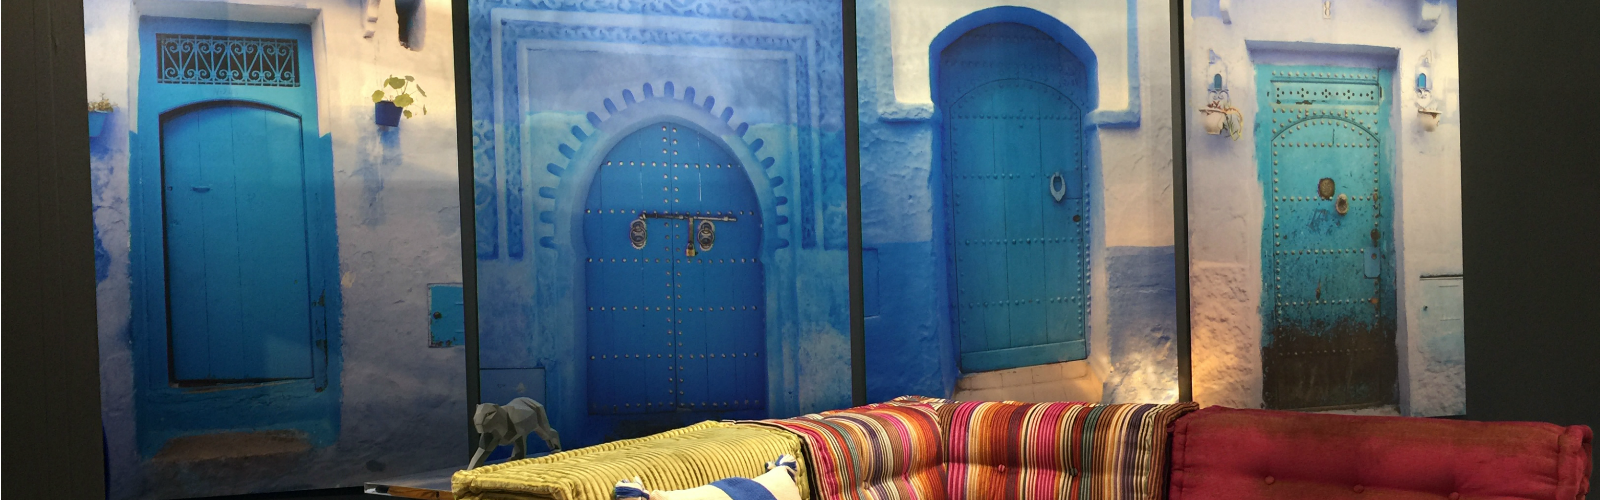 Vicki Rulli is turning people's memories into prints, like these Moroccan Doors.